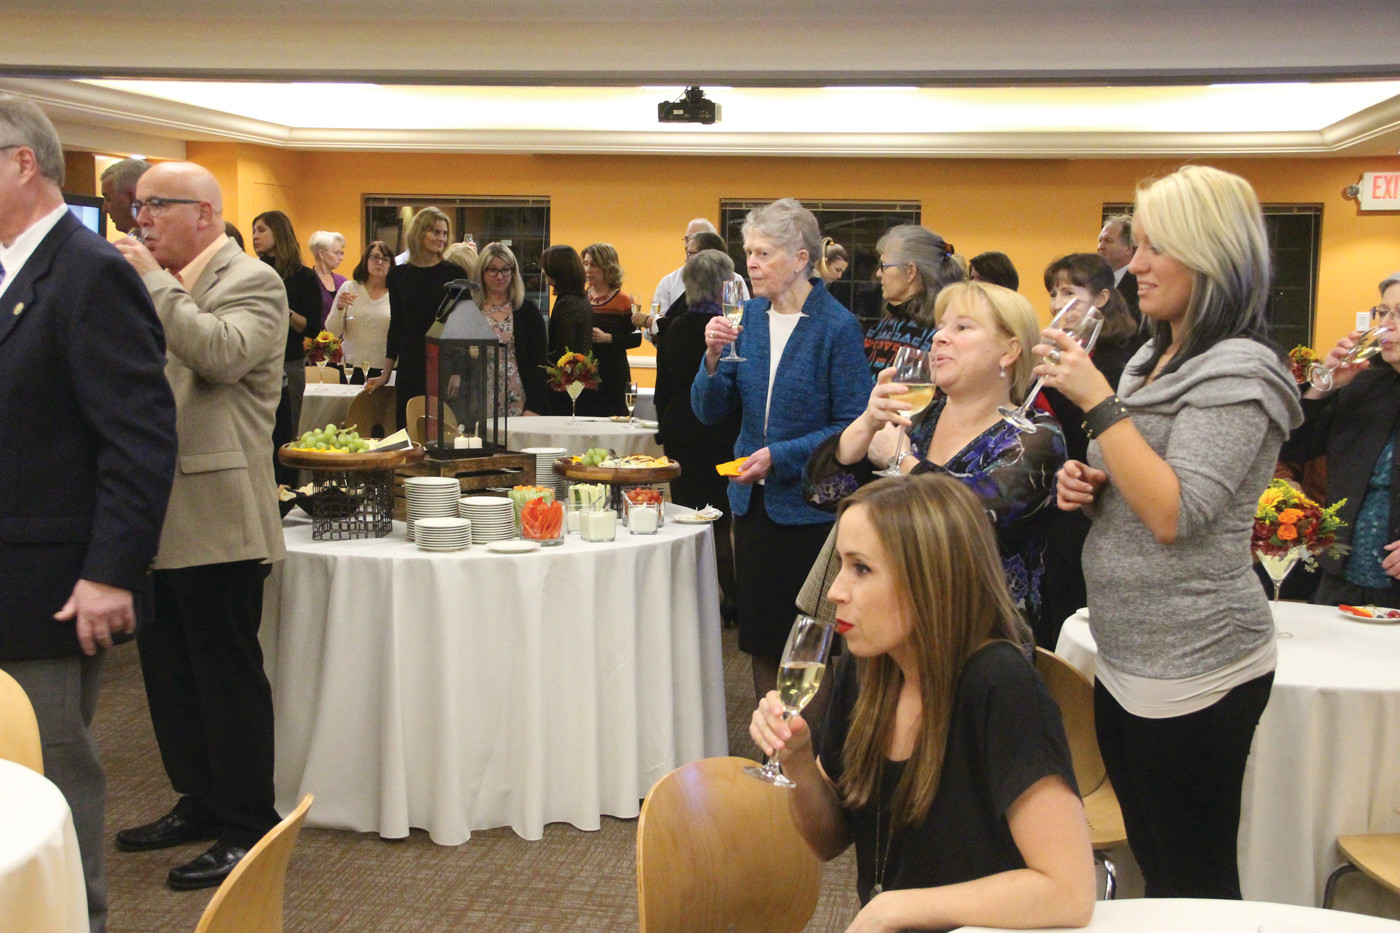 TOAST TO A CENTURY: Those joining in the Sargent Center celebration raised glasses to 101 years of work with disabled children and adults.